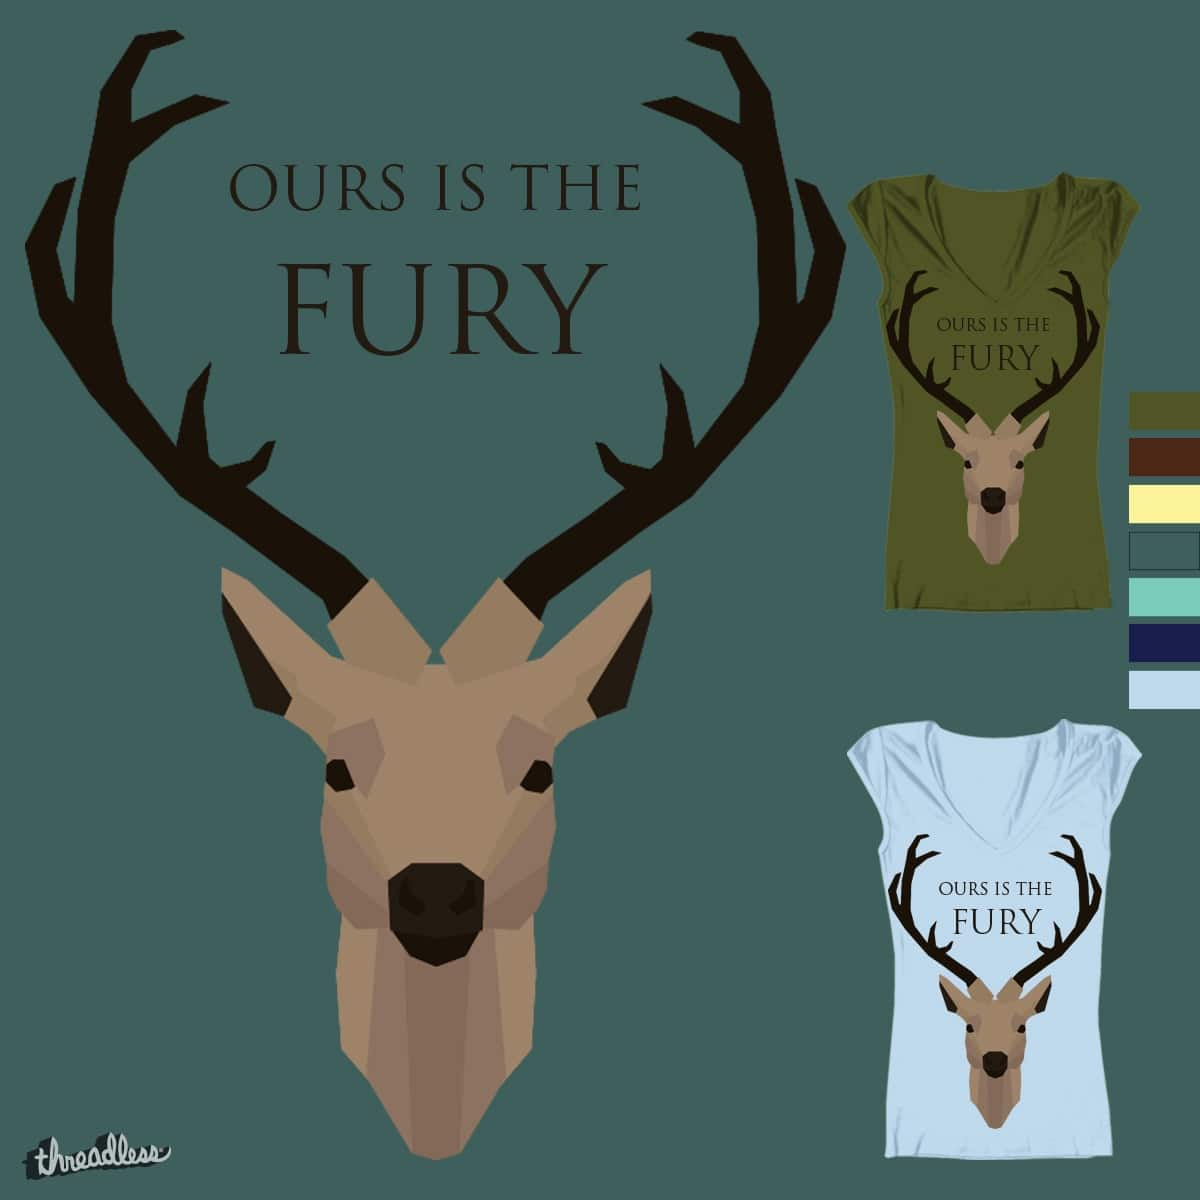 Ours is the Fury by Ashleyaileen on Threadless